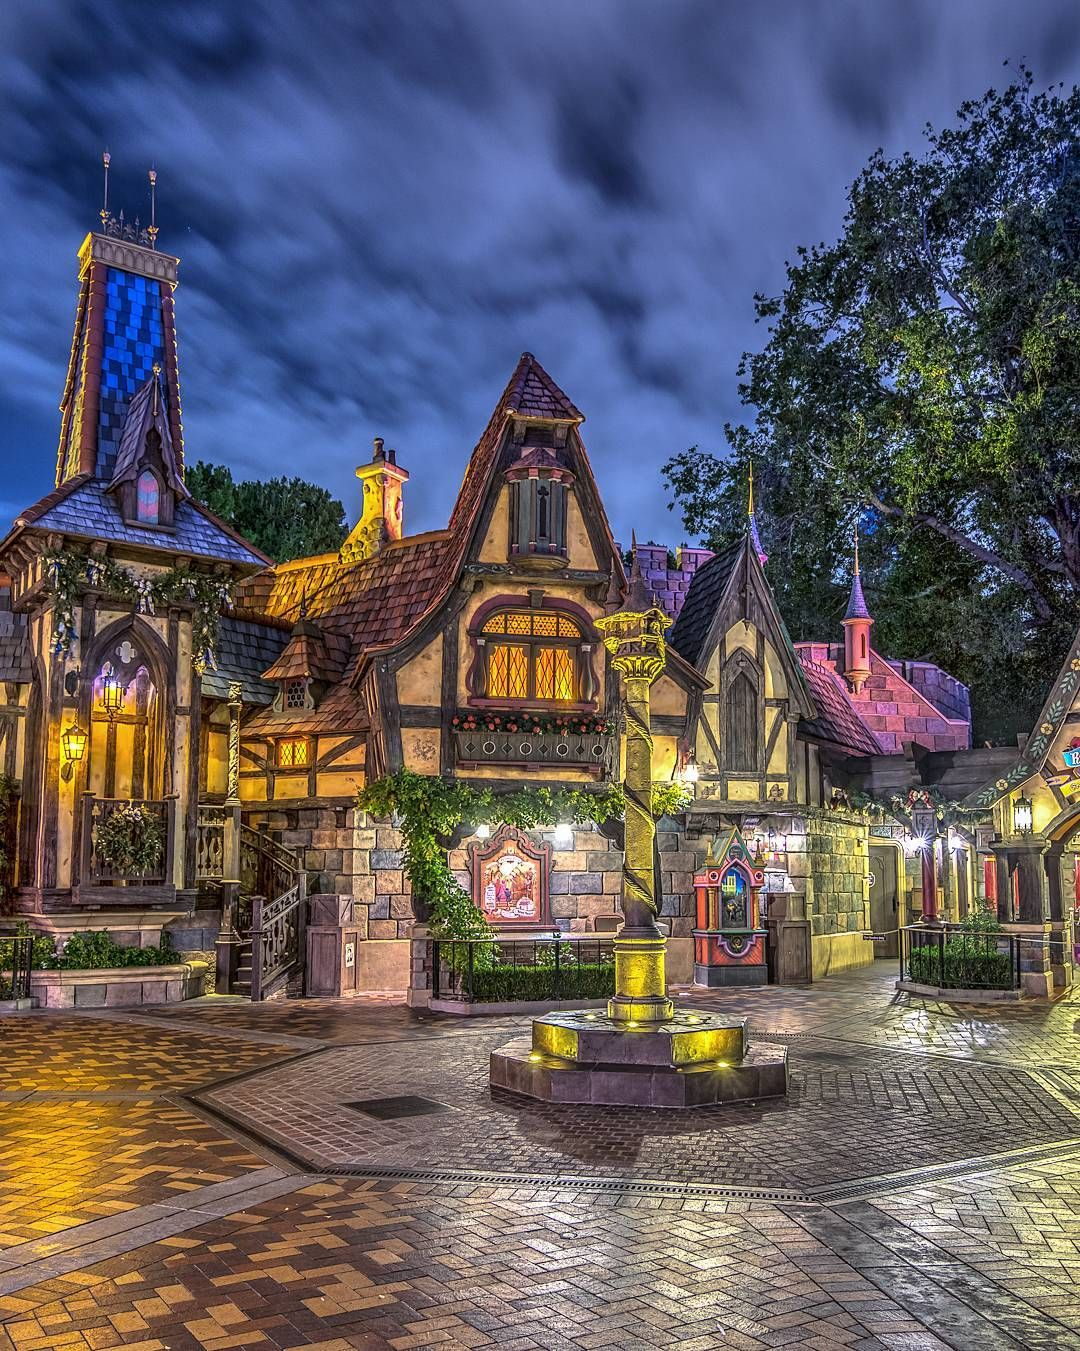 The beautiful fantasy faire. I love the way it looks at night. Such a different look during the day, well, to me anyway. #fantasyfaire #waltdisney #disneyland